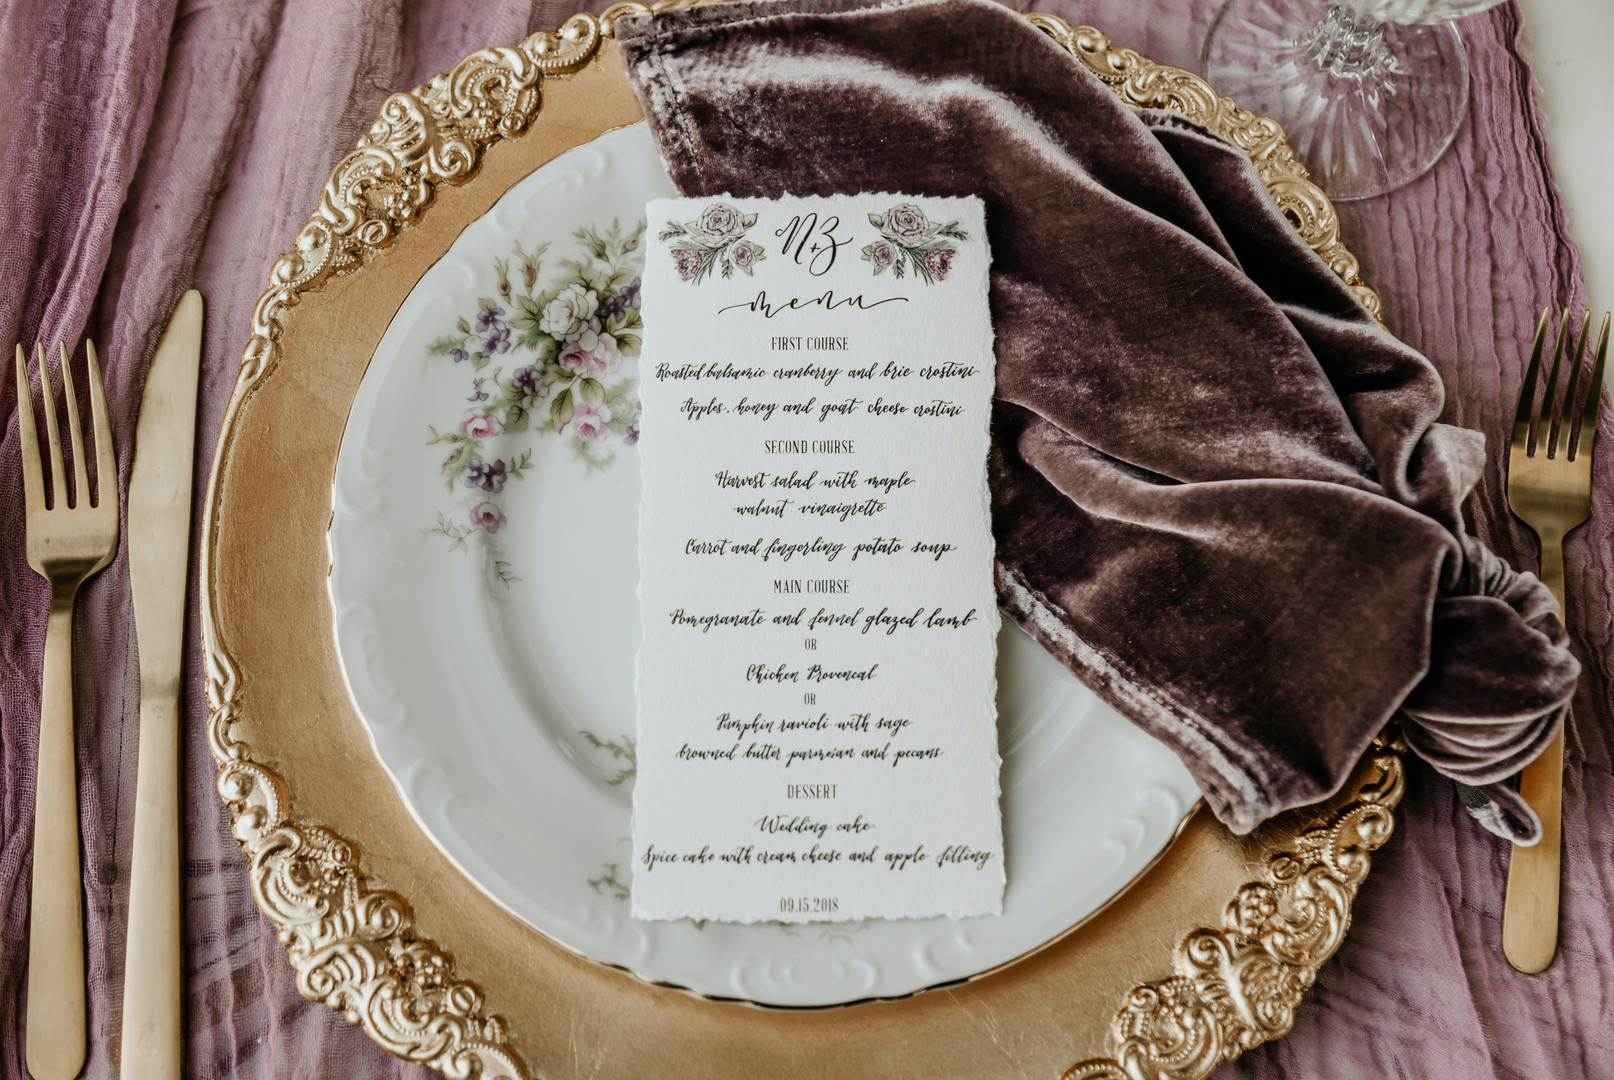 gold, white, and cream place setting with purple velvet cloth and gold utensils